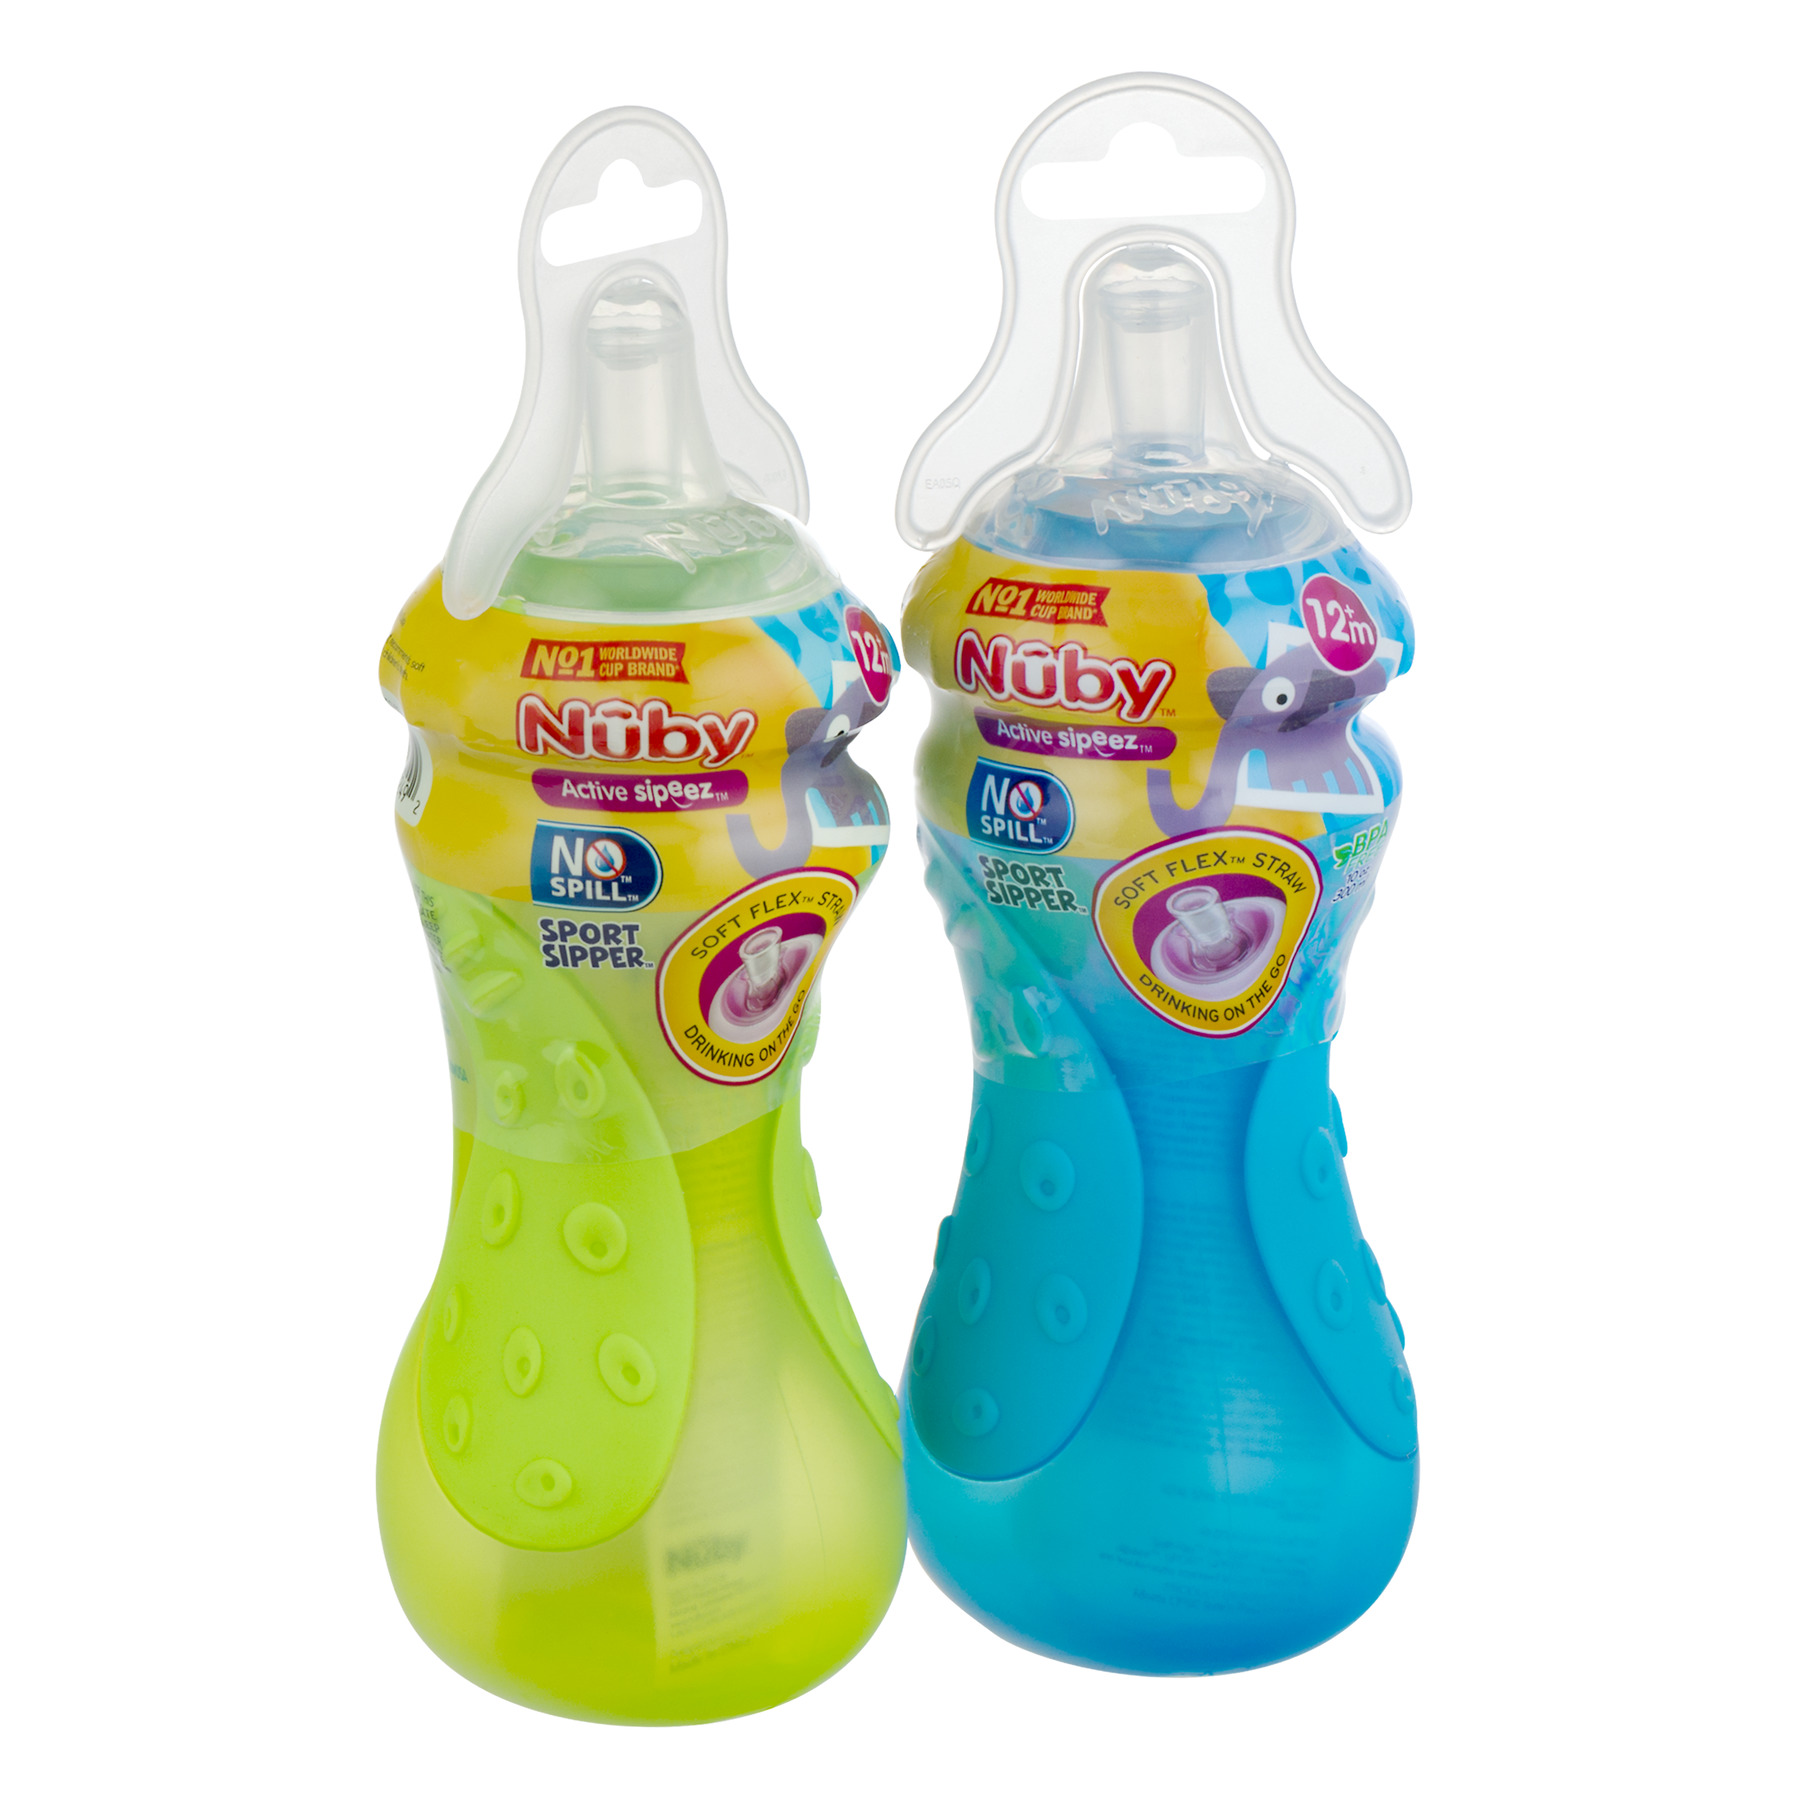 Sports Sipper Bottle: 2 Pack Nûby 10 Oz No-Spill Sport Sipper Cup Stage 12+m